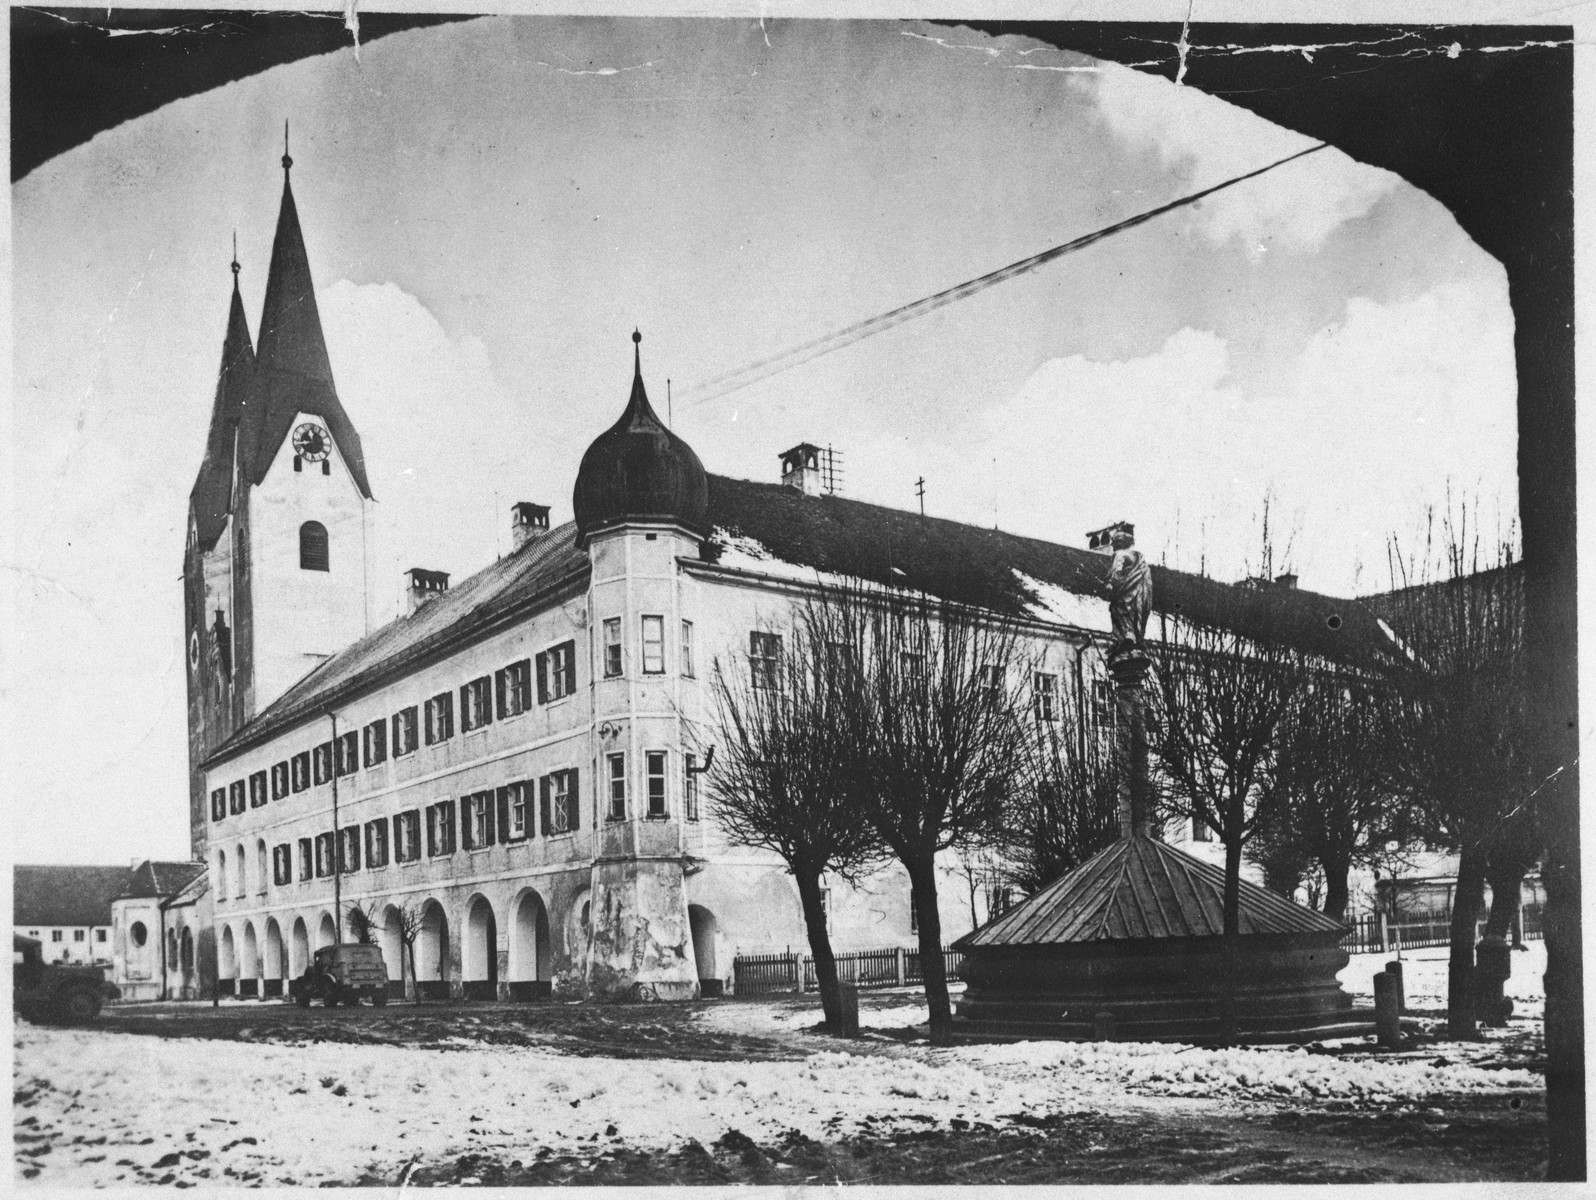 Exterior view of the Kloster Indersdorf children's home.